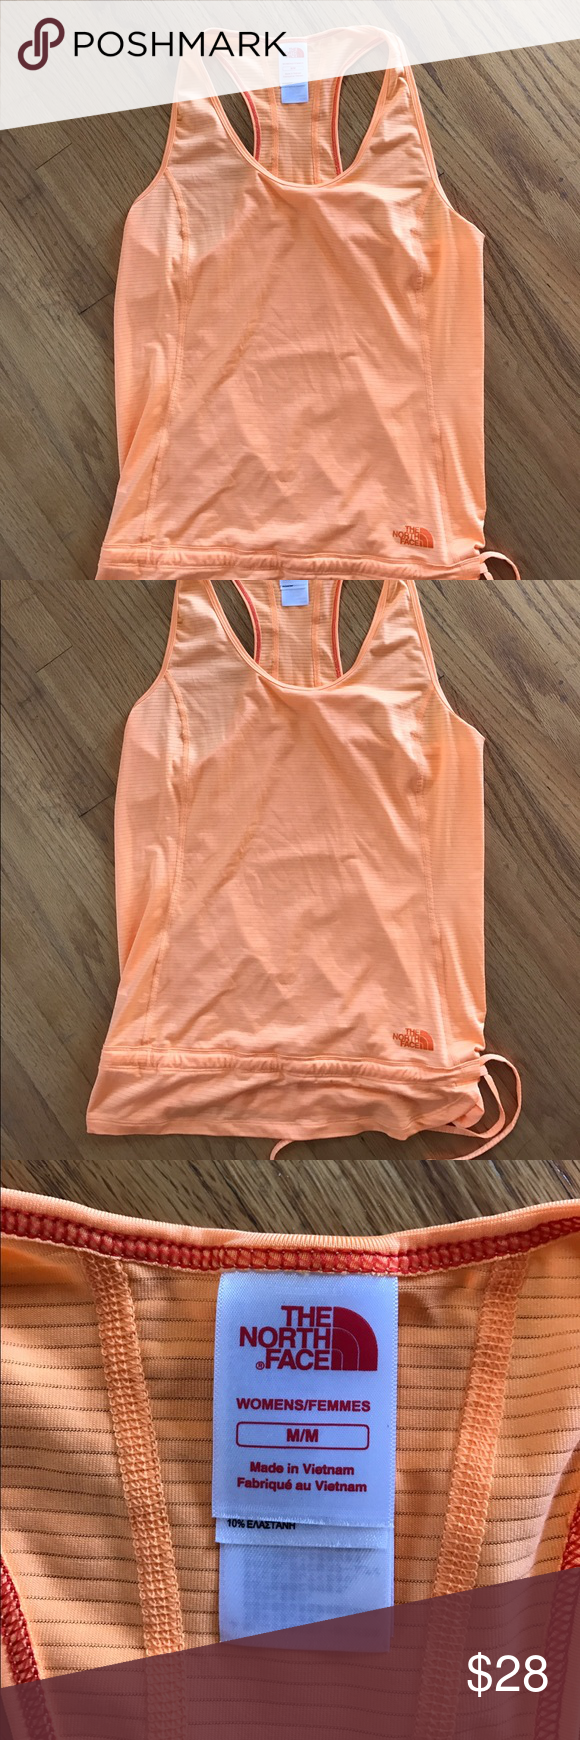 North Face Tank Top No rips or stains. Wonderful tank top, perfect for this summer! North Face Tops Tank Tops